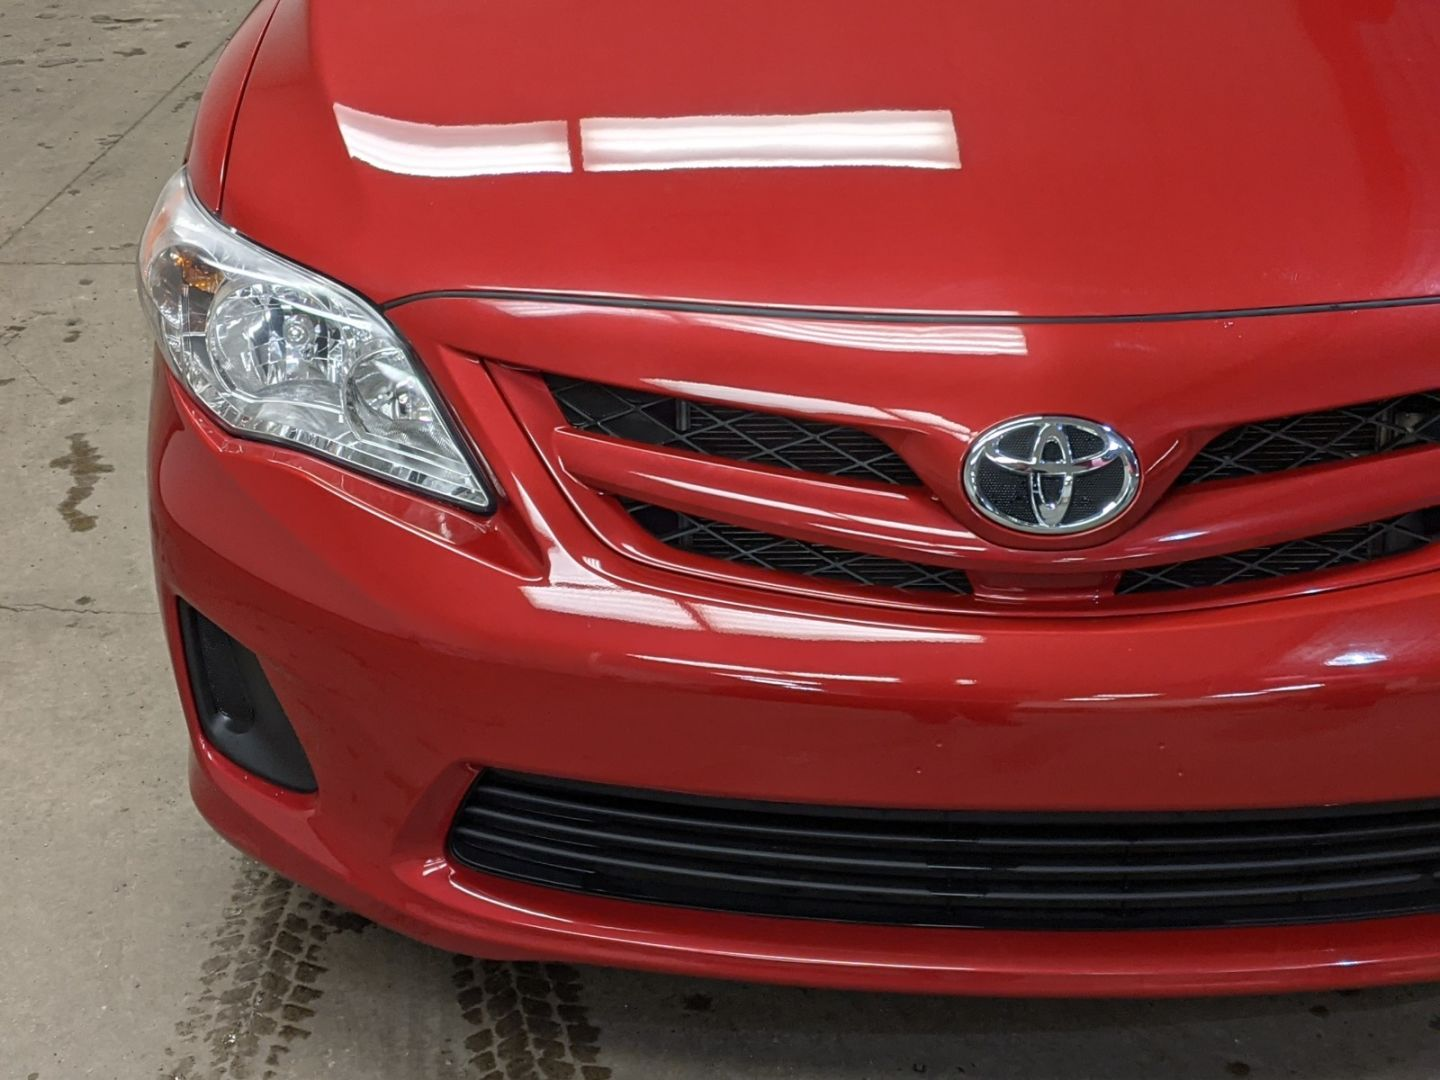 2013 Toyota Corolla CE for sale in Edmonton, Alberta